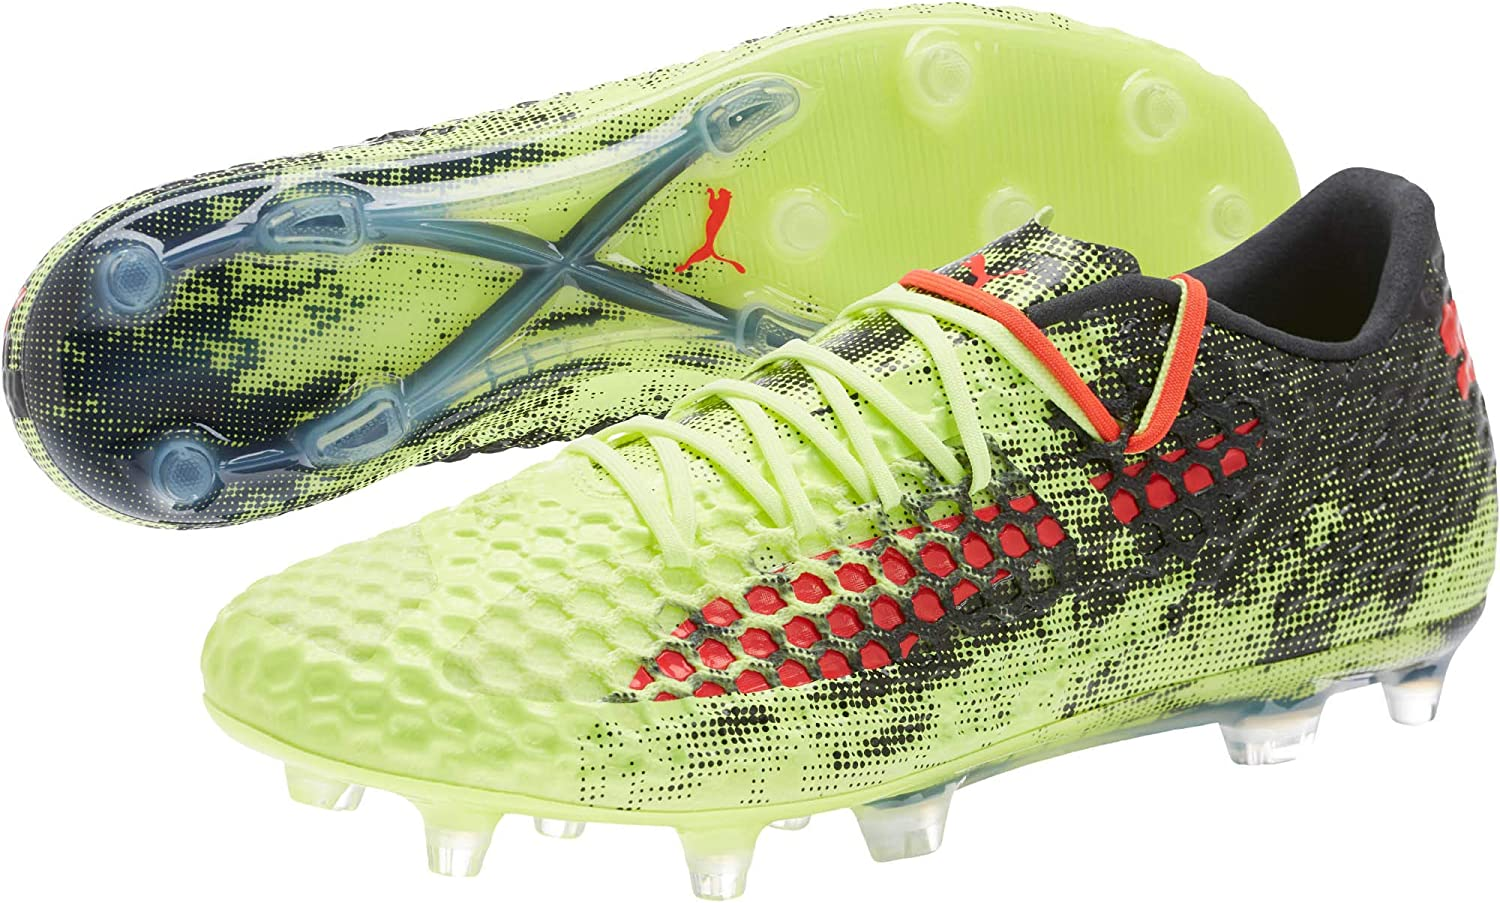 PUMA Future 18.1 Netfit Low FG AG Soccer Cleats Men's Size 7-13 Yellow Red Black 104980-01